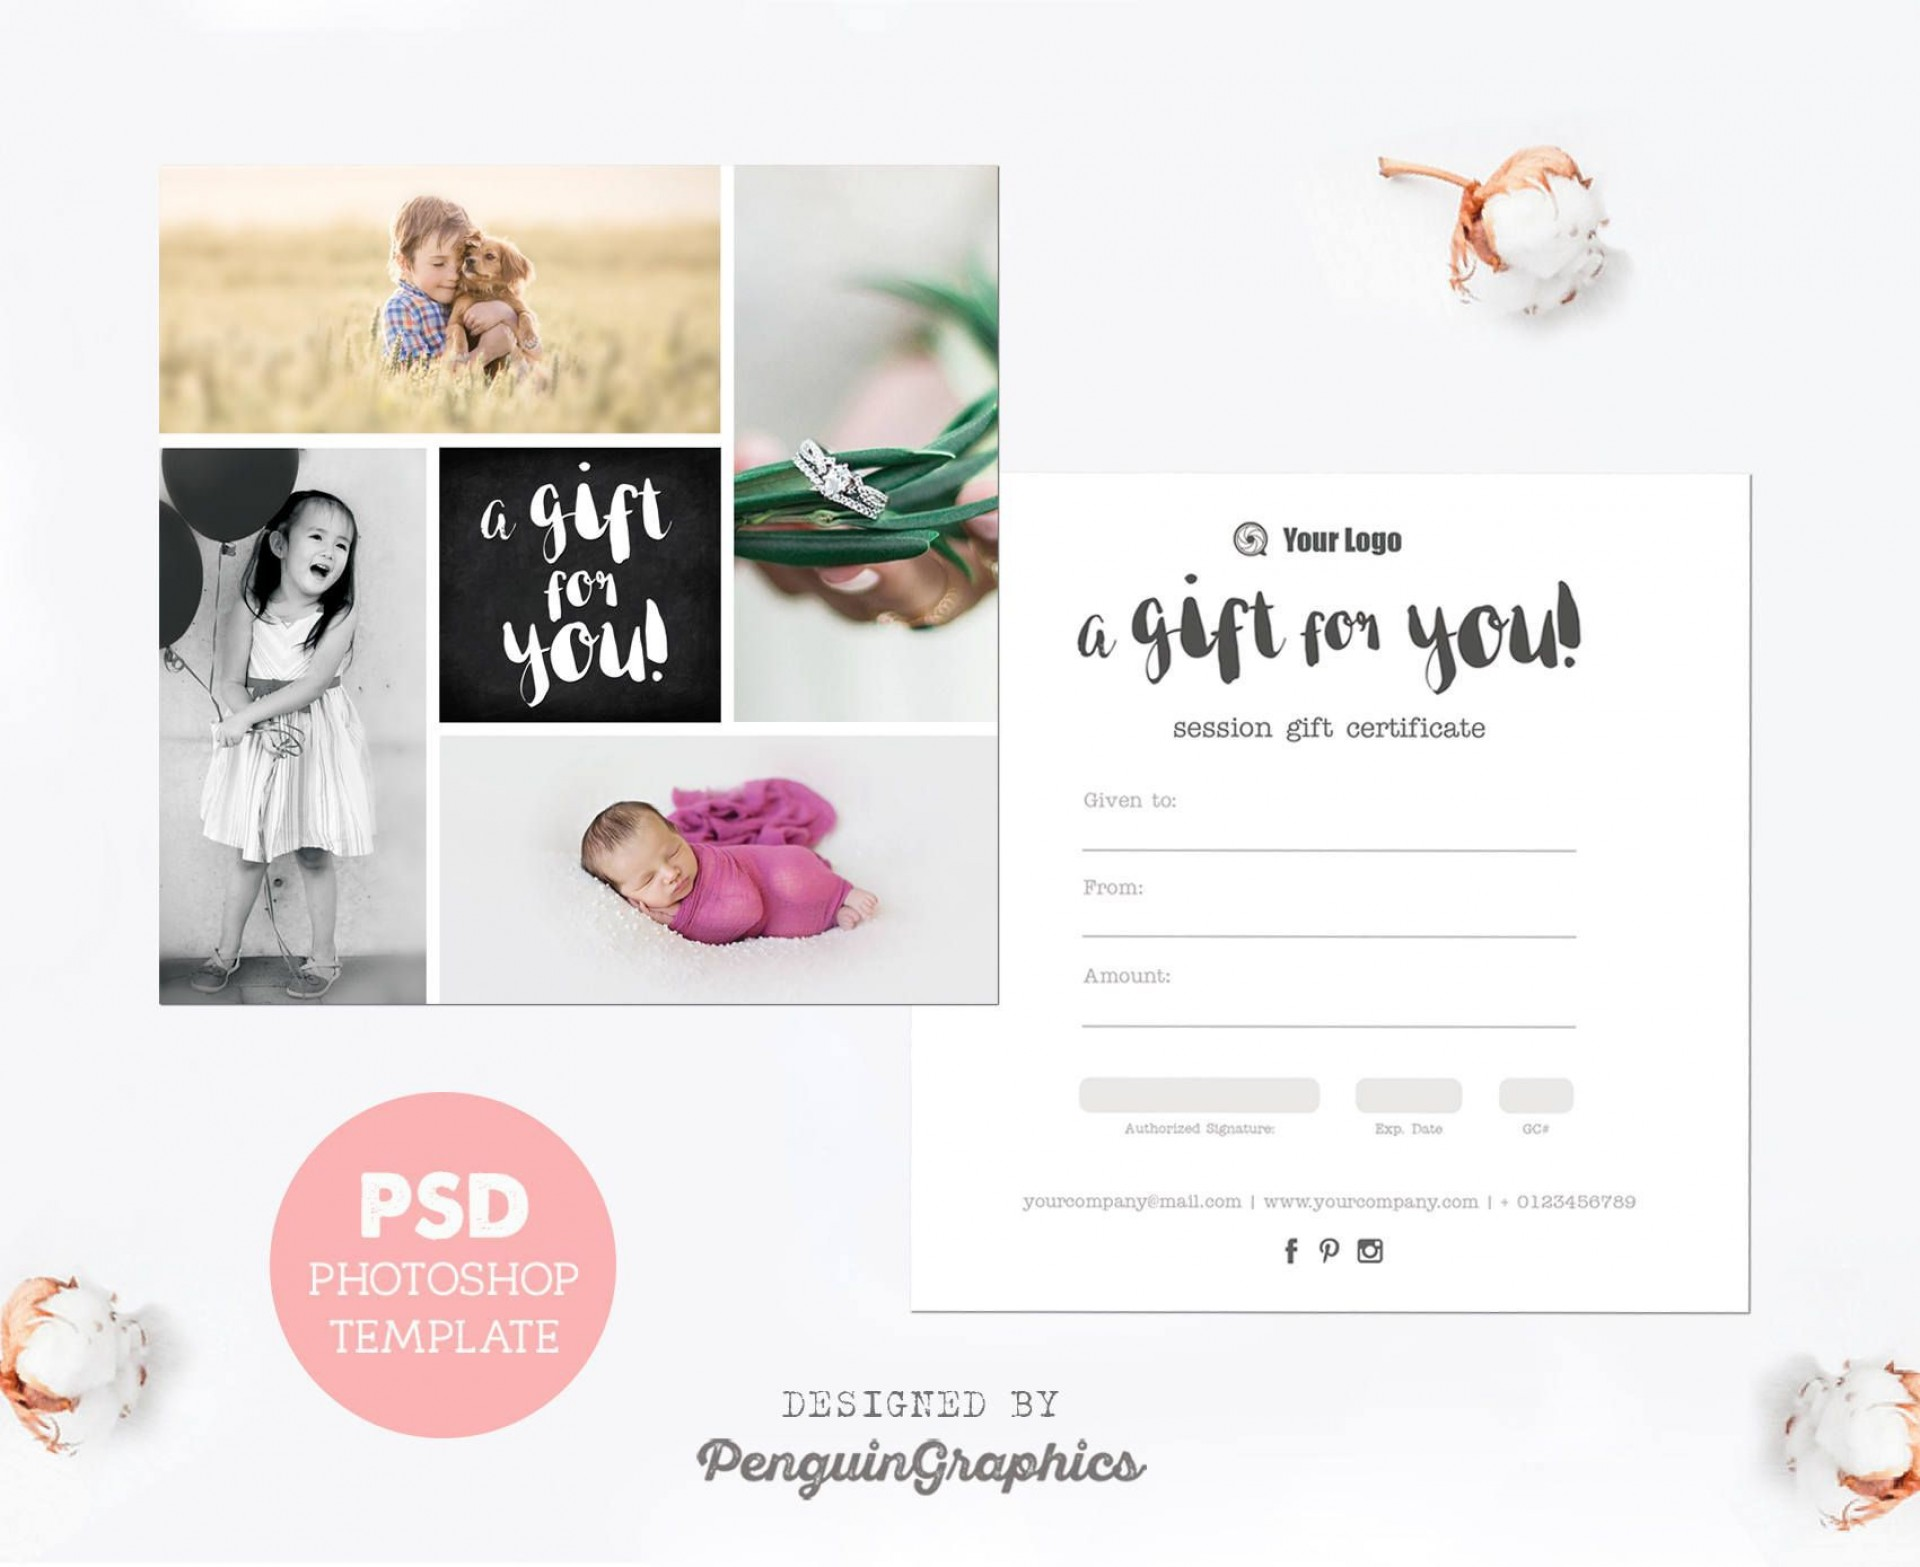 006 Exceptional Photography Session Gift Certificate Template Design  Photo Free1920